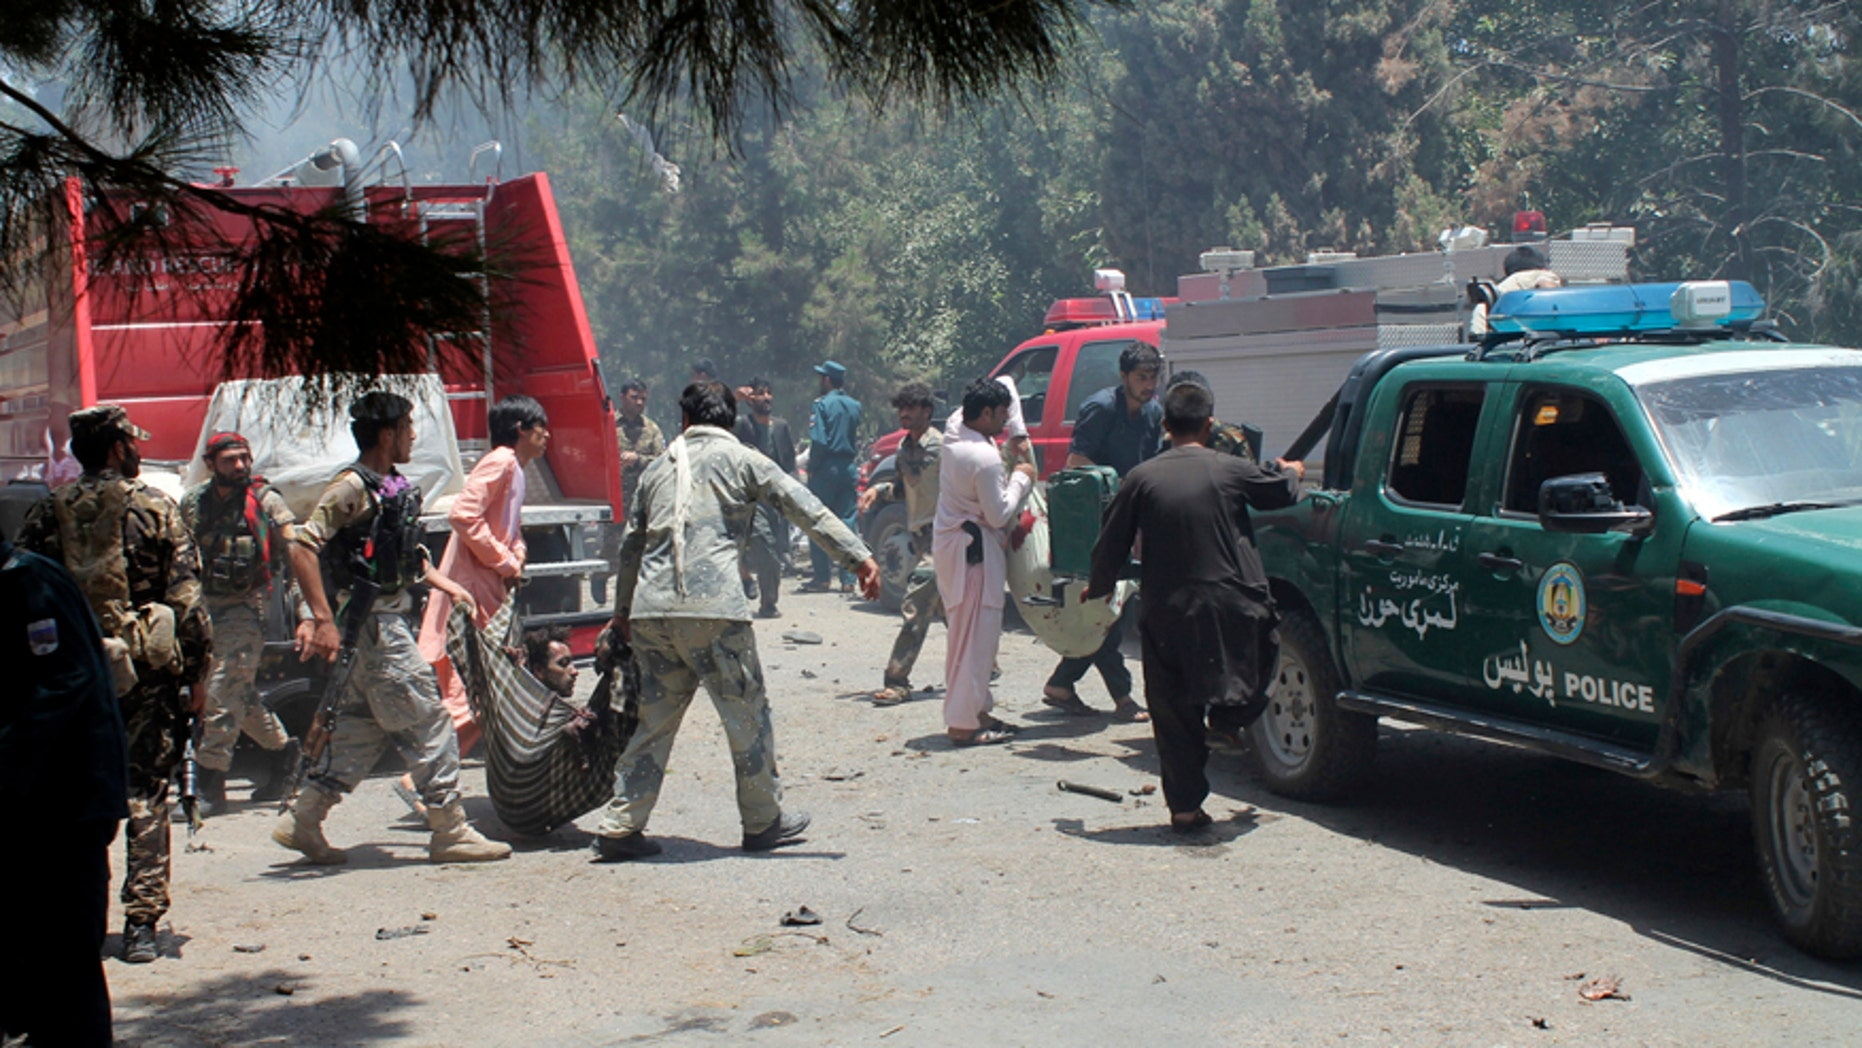 Afghans carry an injured man after a suicide car bombing in Helmand province southern of Kabul, Afghanistan, Thursday, June 22, 2017. The bomber struck outside a bank, targeting Afghan troops and government employees waiting to collect their salaries ahead of a major Muslim holiday and killing at least two dozen people, officials said. (AP Photo/Abdul Khaliq)